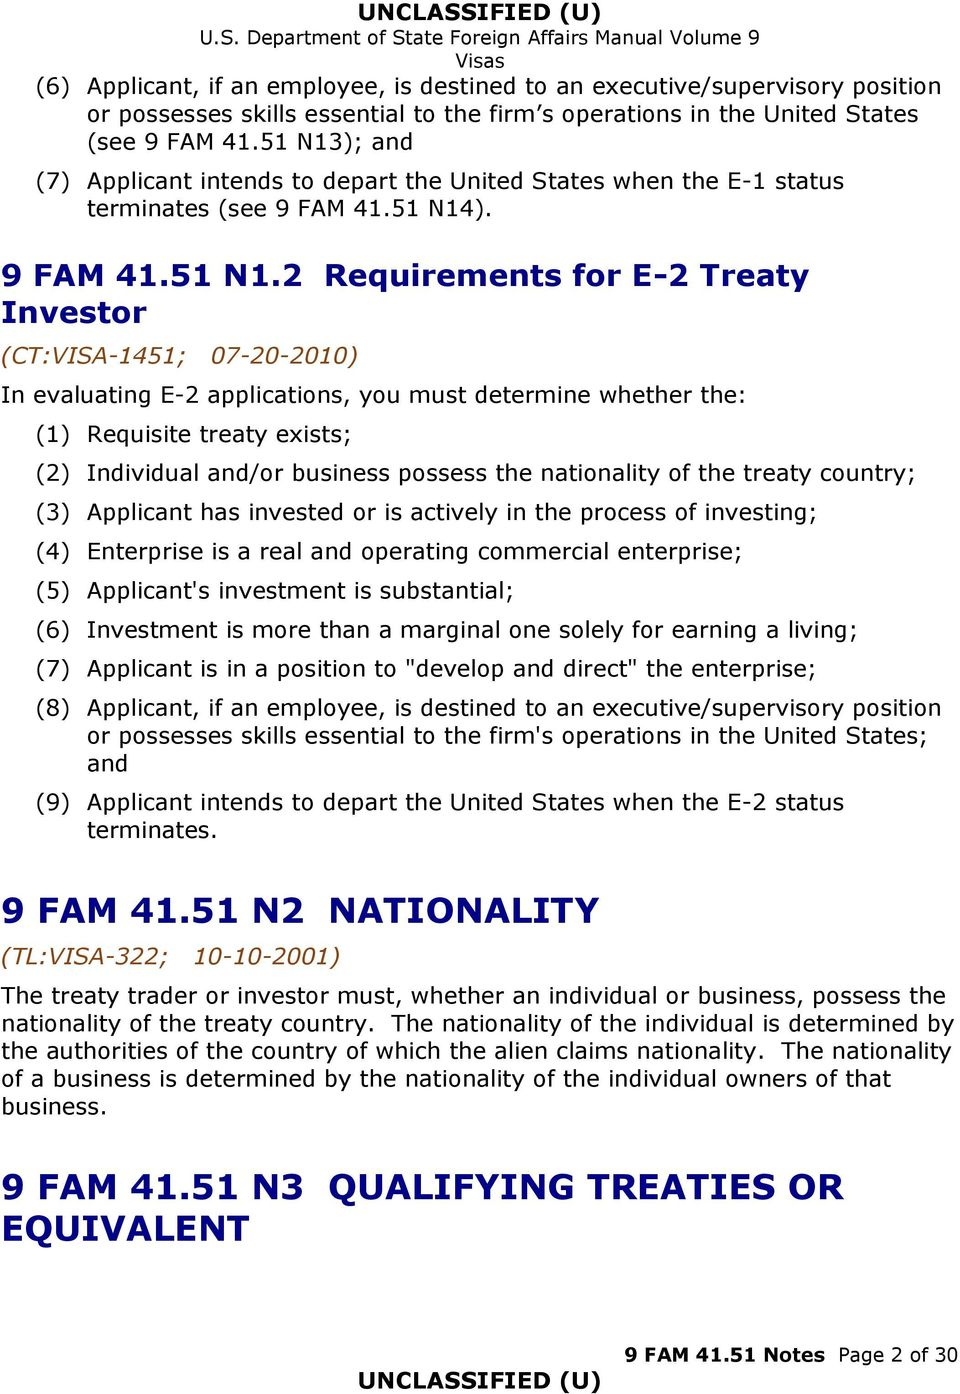 ); and (7) Applicant intends to depart the United States when the E-1 status terminates (see 9 FAM 41.51 N14